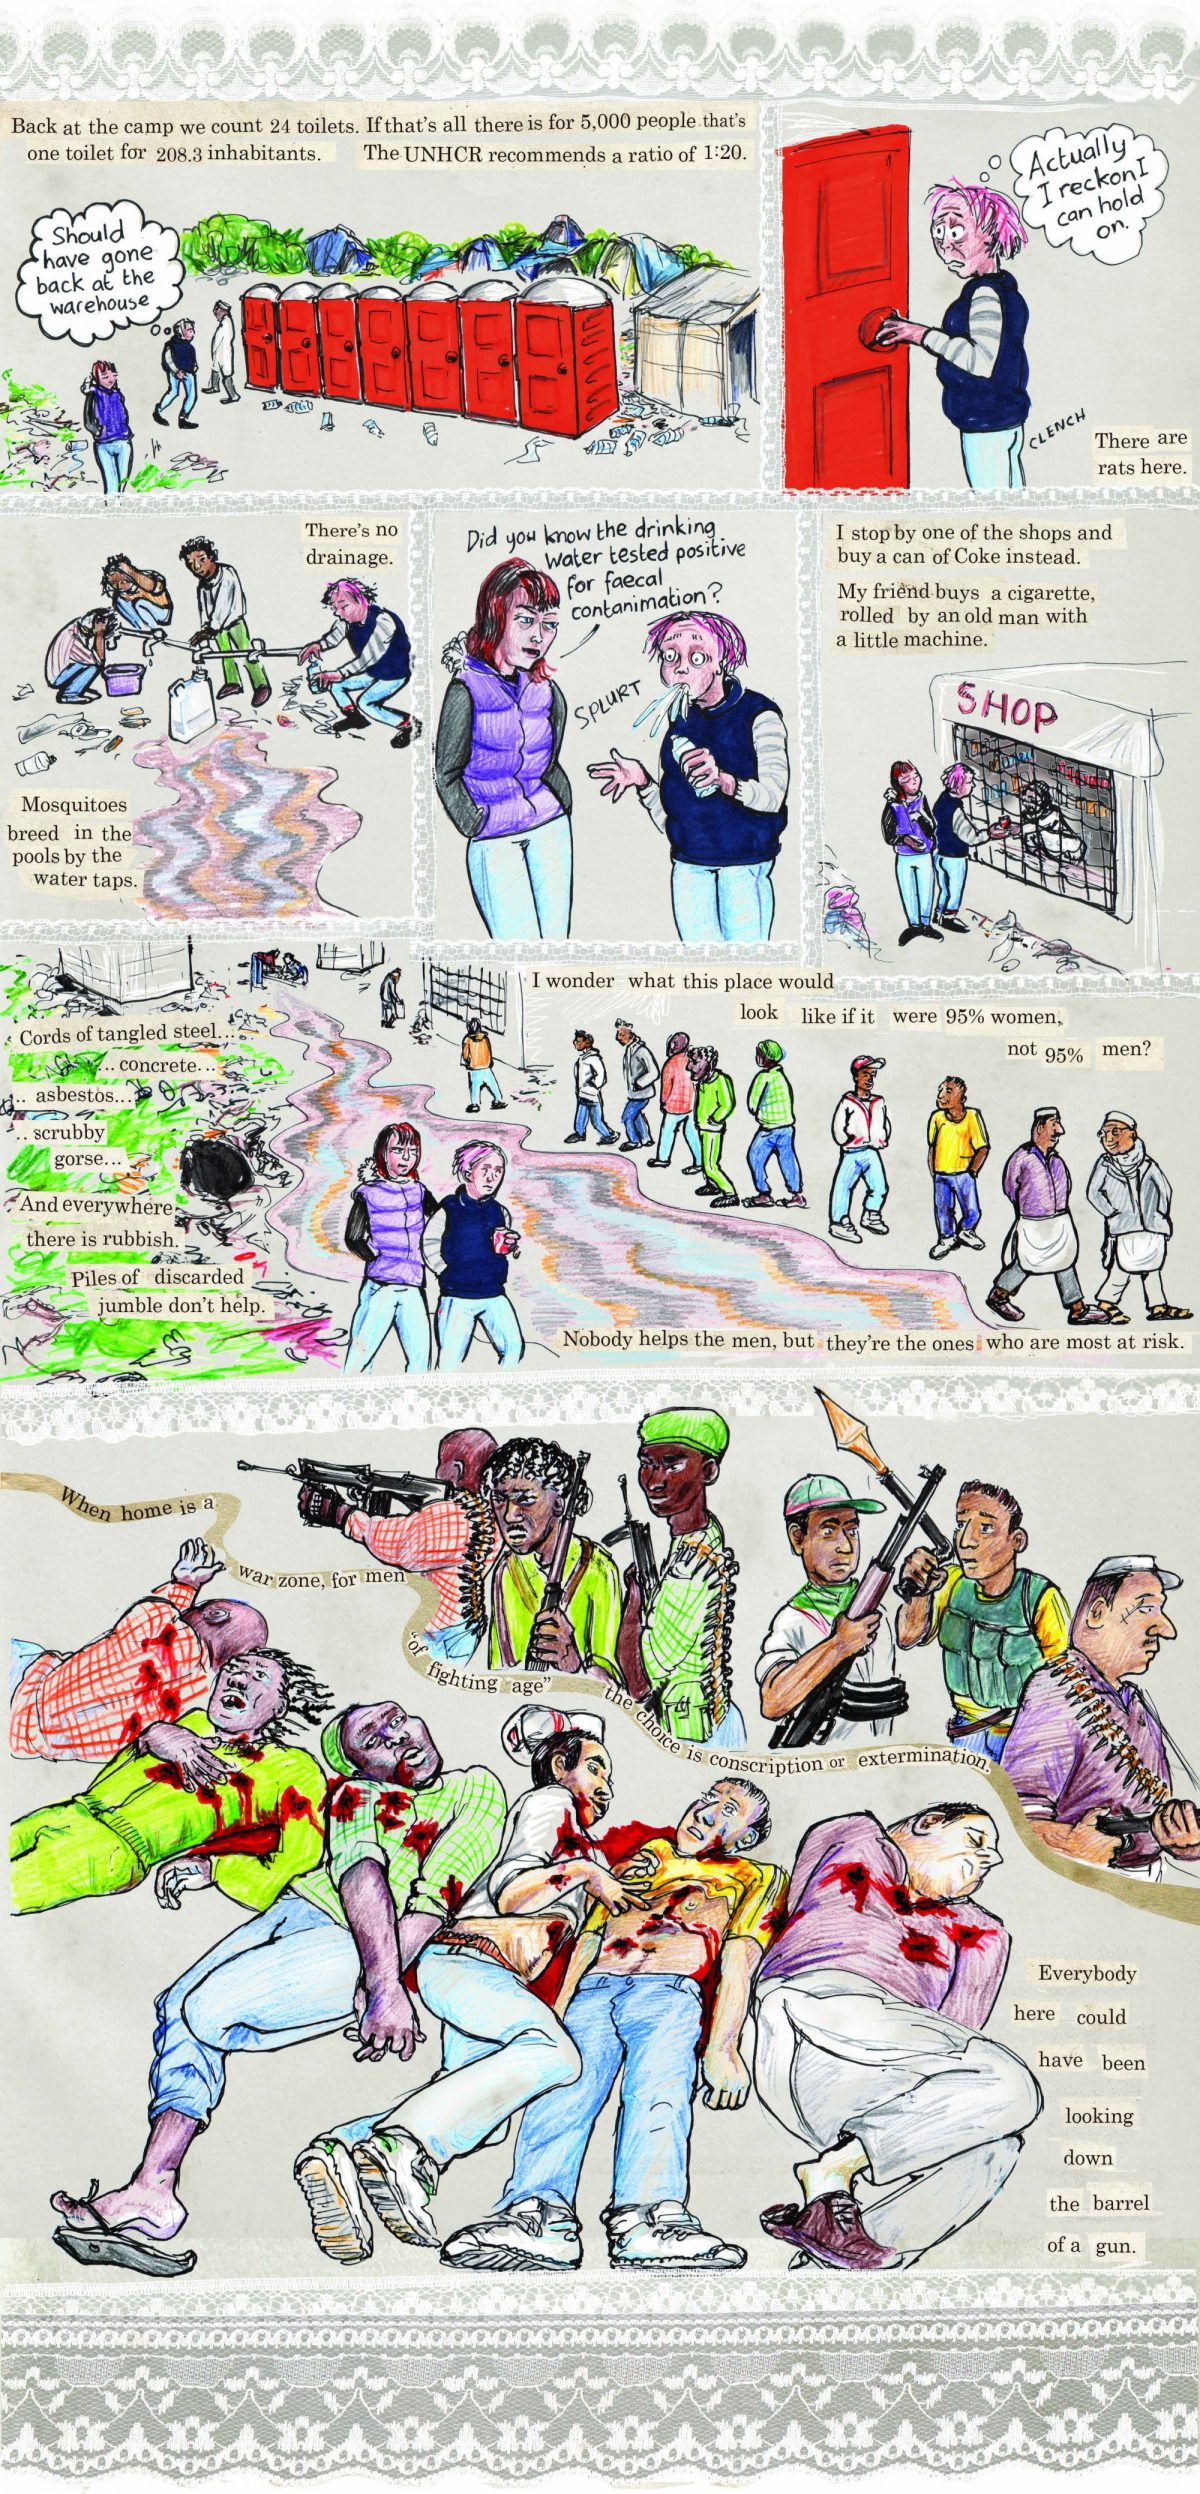 threads from the calais refugee crisis graphic essay kate kate evans